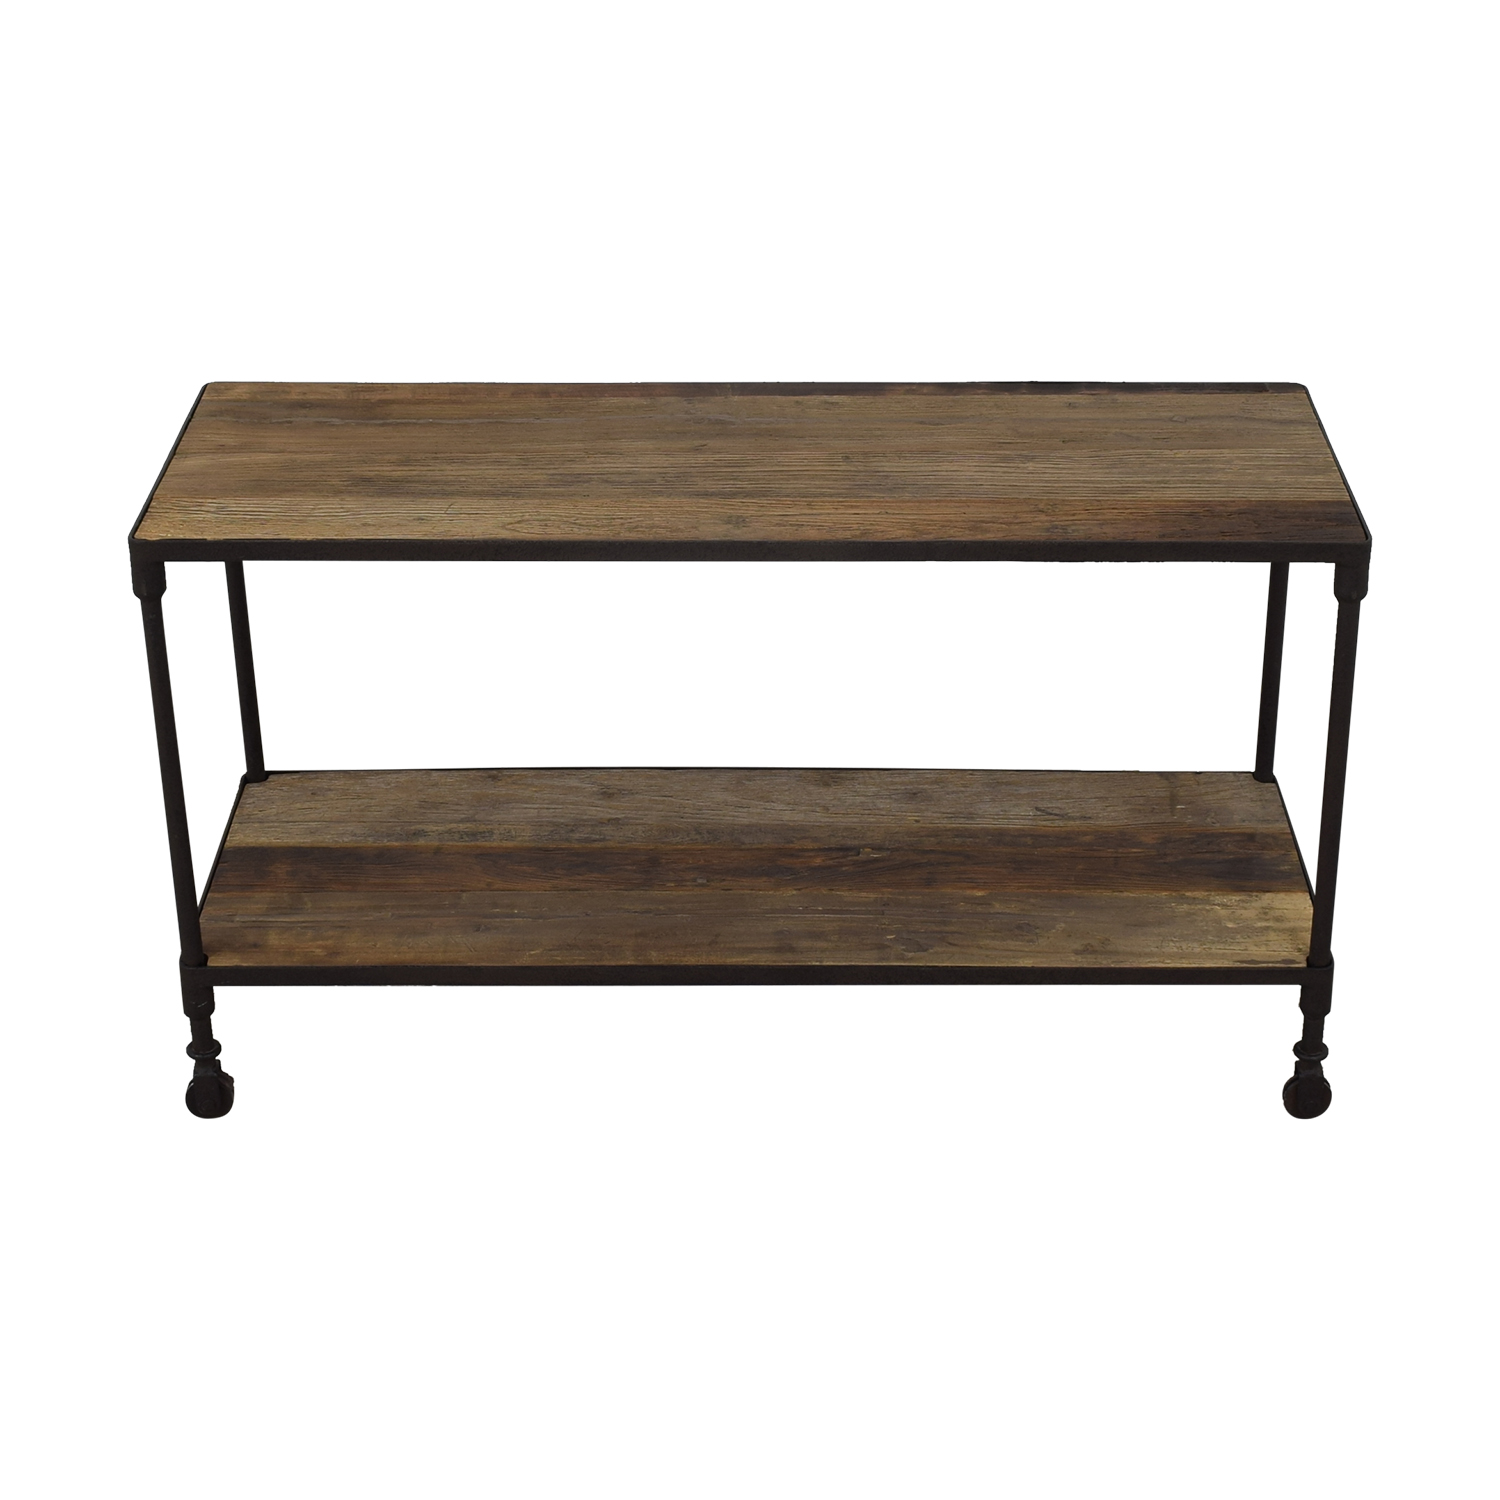 Restoration Hardware Restoration Hardware Dutch Industrial Console Table used